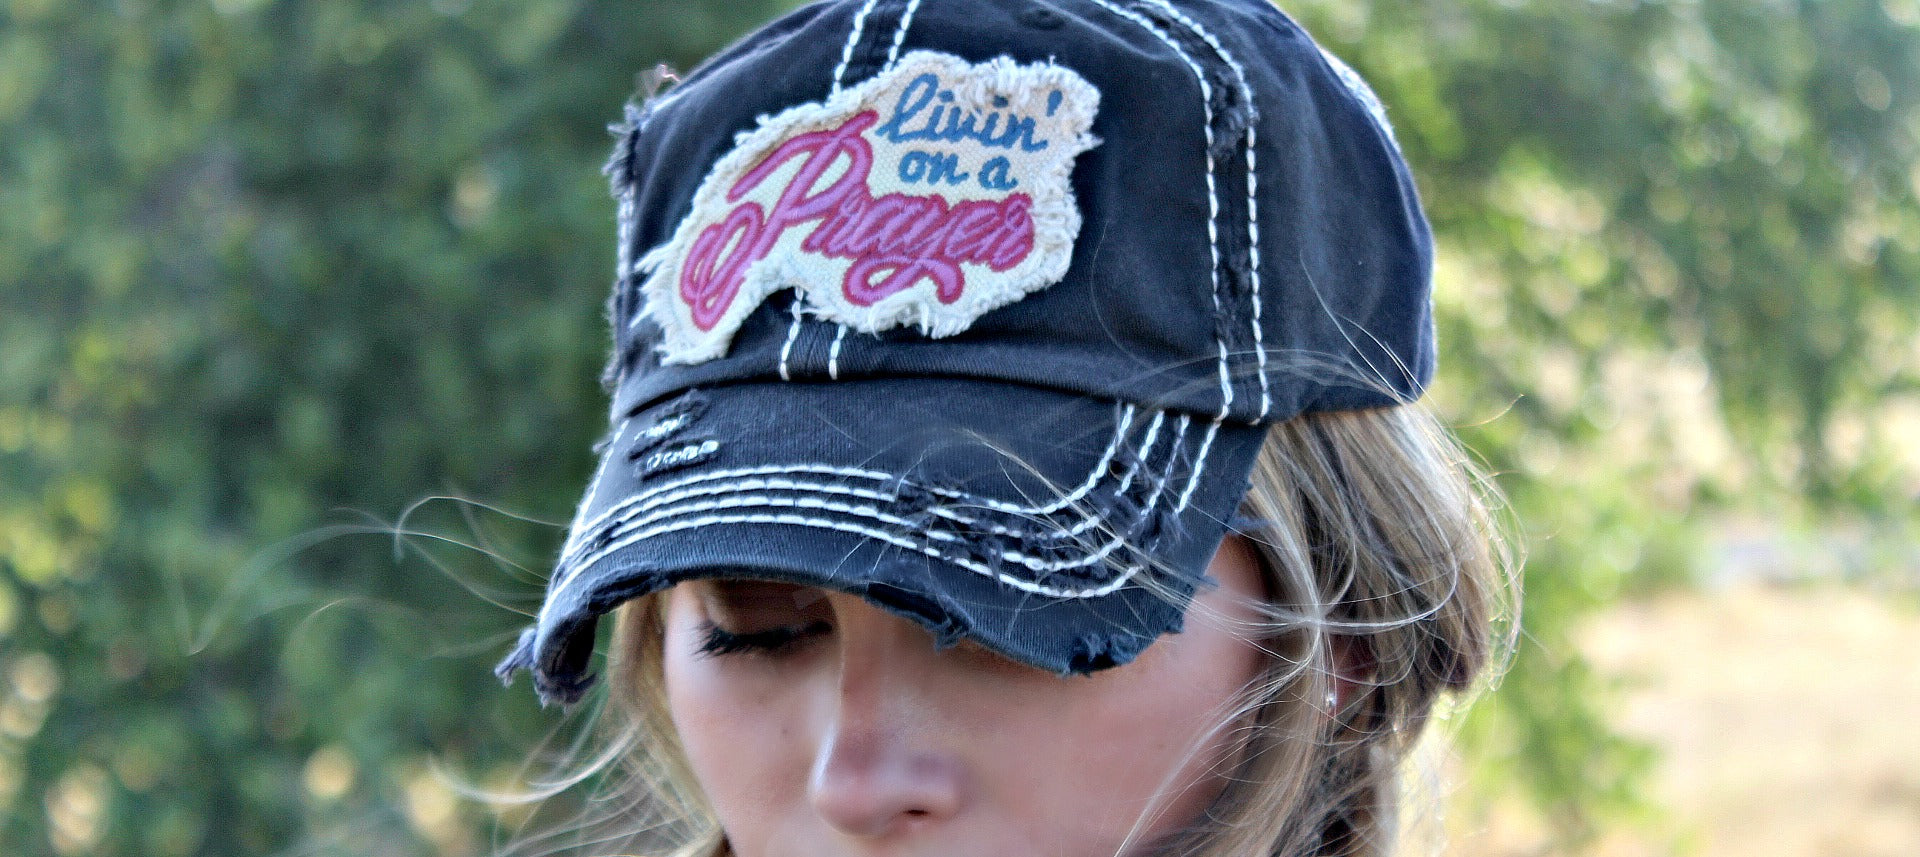 NEW!! Distressed Country Hats & More